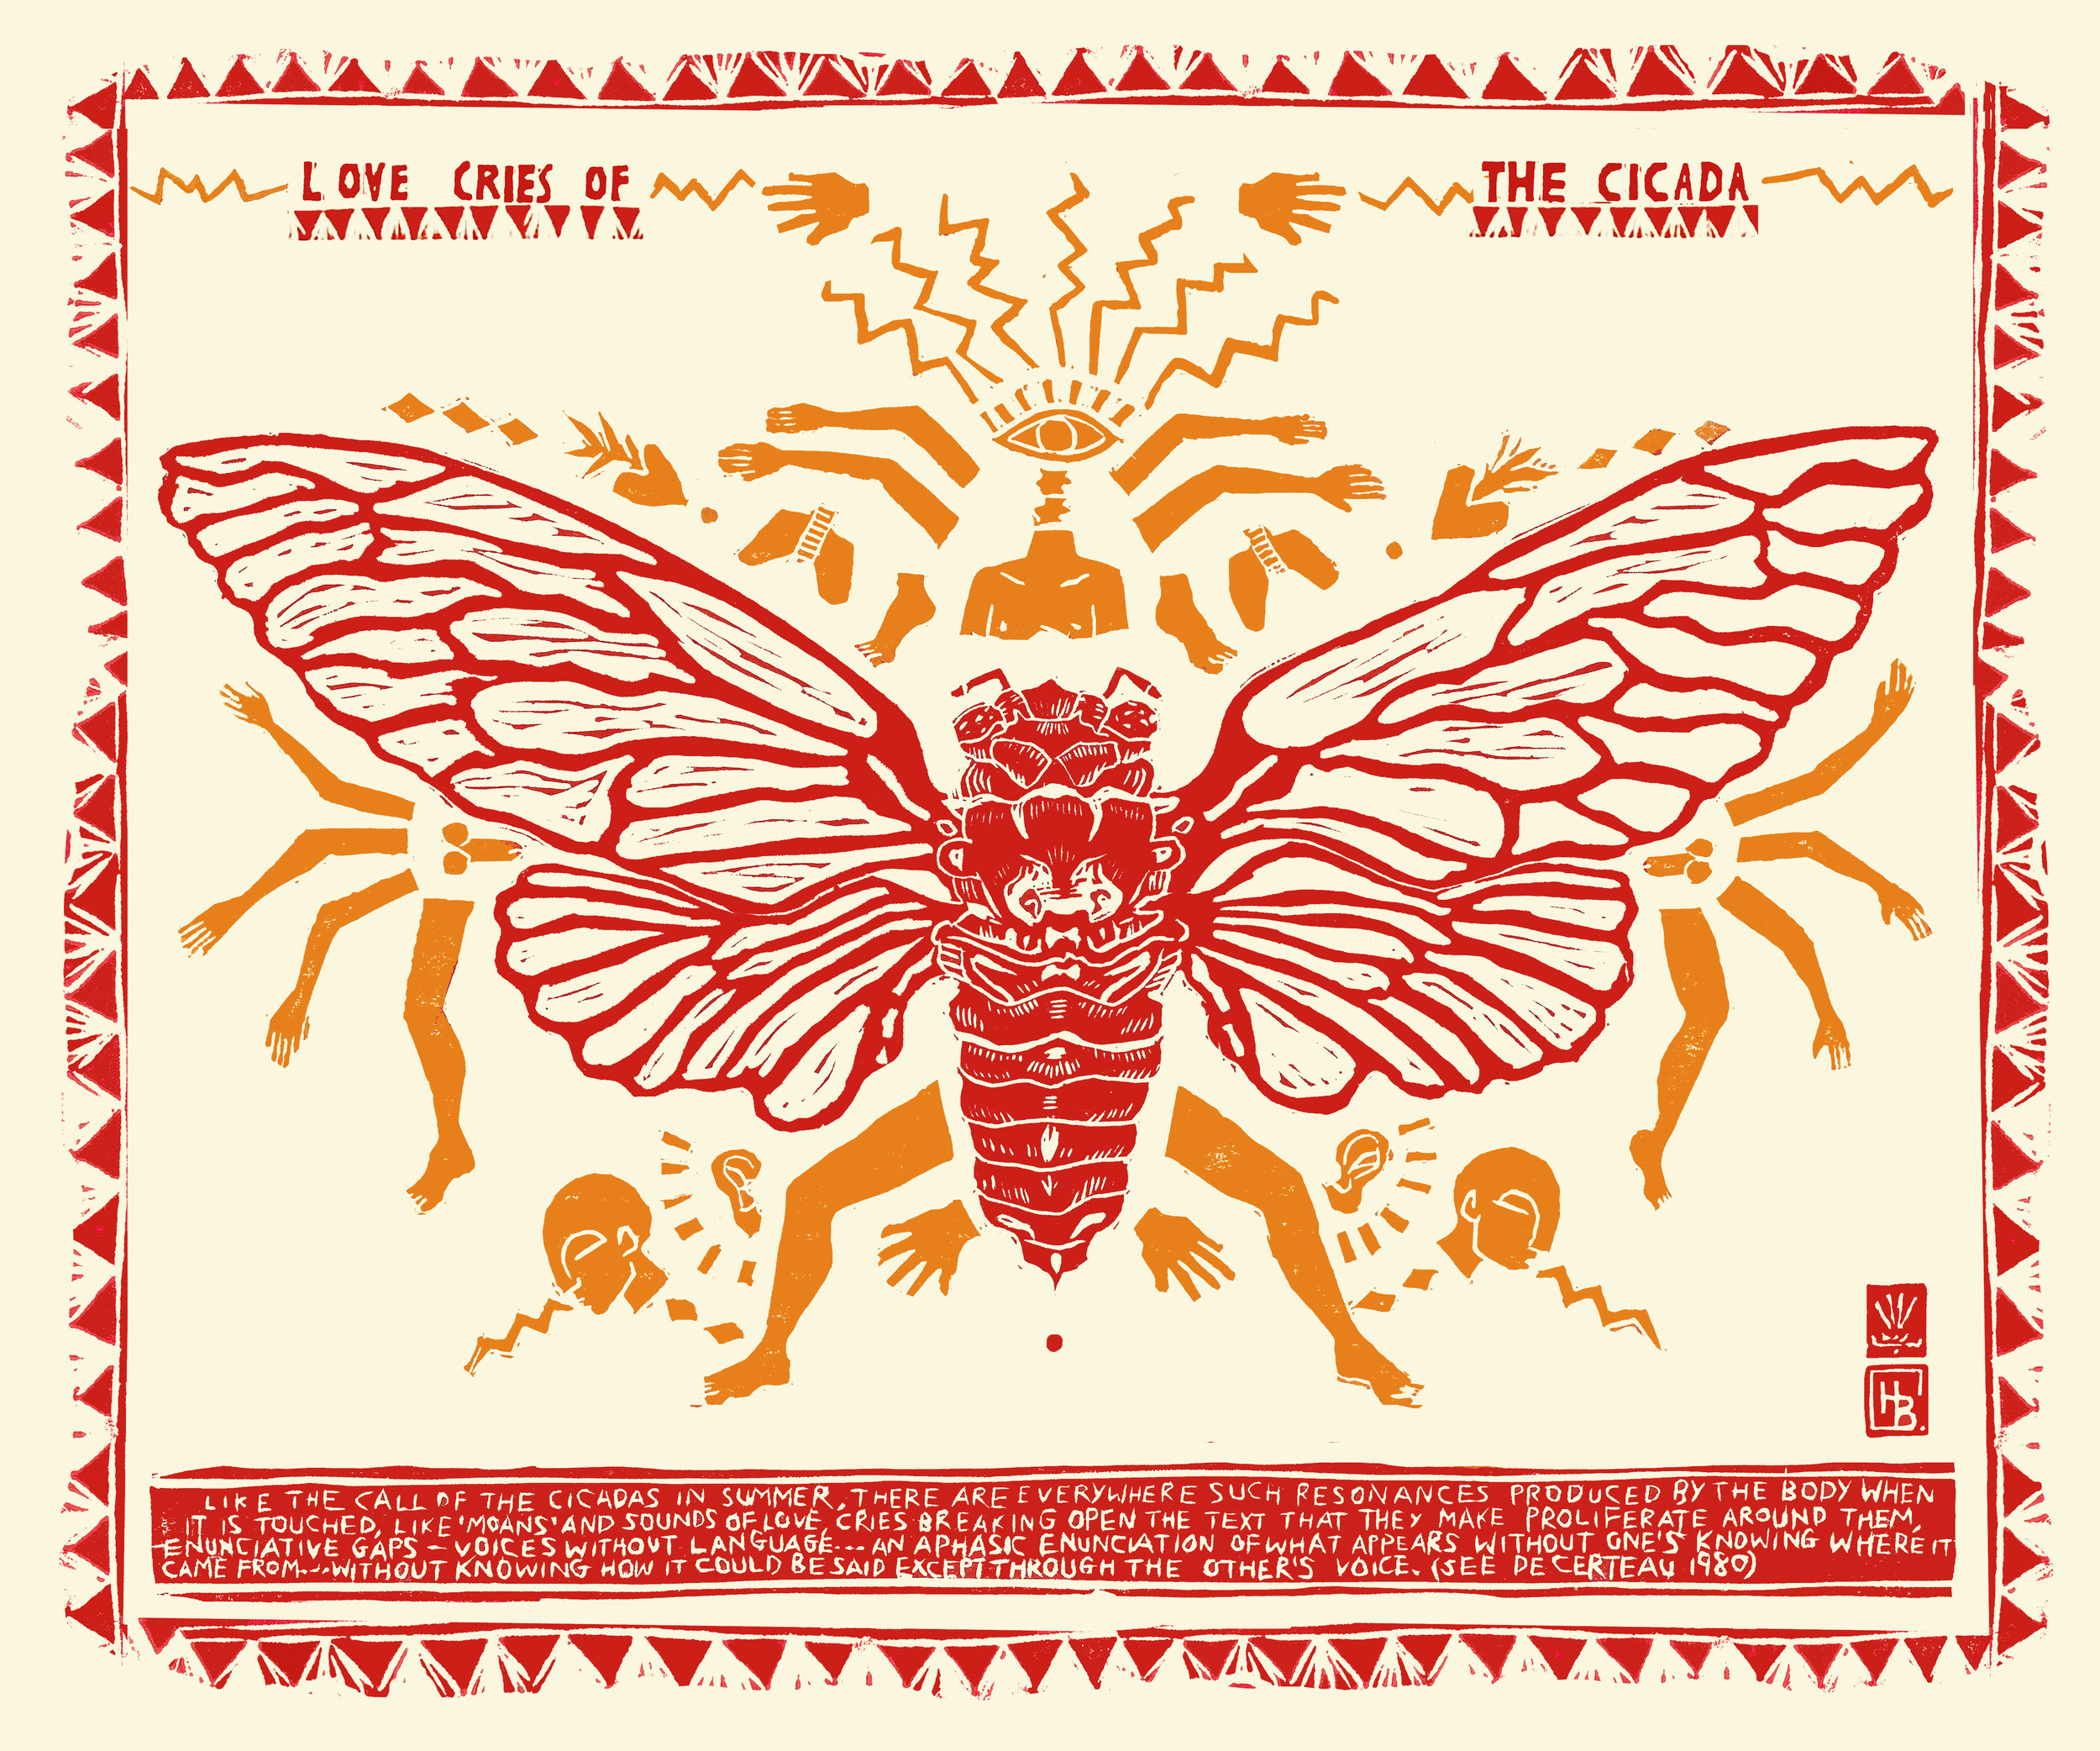 Love Cries of the Cicada, 2019  Lino cut and stamp print and digital manipulation